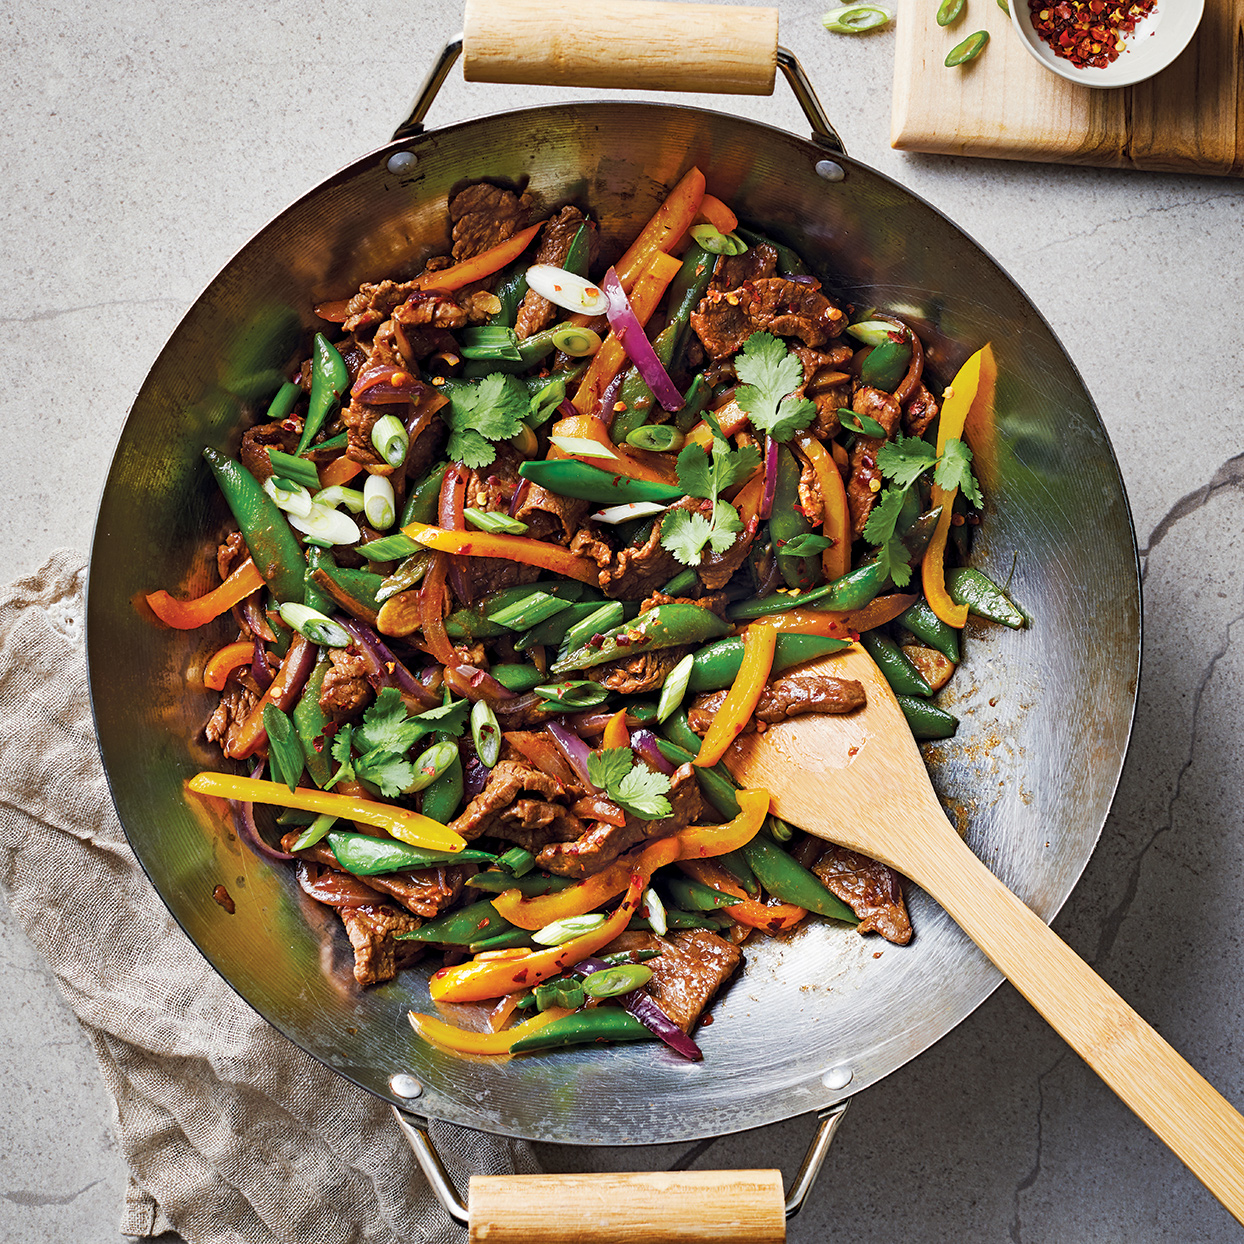 Turn to this beef stir-fry recipe for a quick and easy dinner. The tender, spicy steak is cooked in the same wok or skillet as the crisp, colorful vegetables and smells divine as the dish is cooking. Source: 400 Calorie Recipes